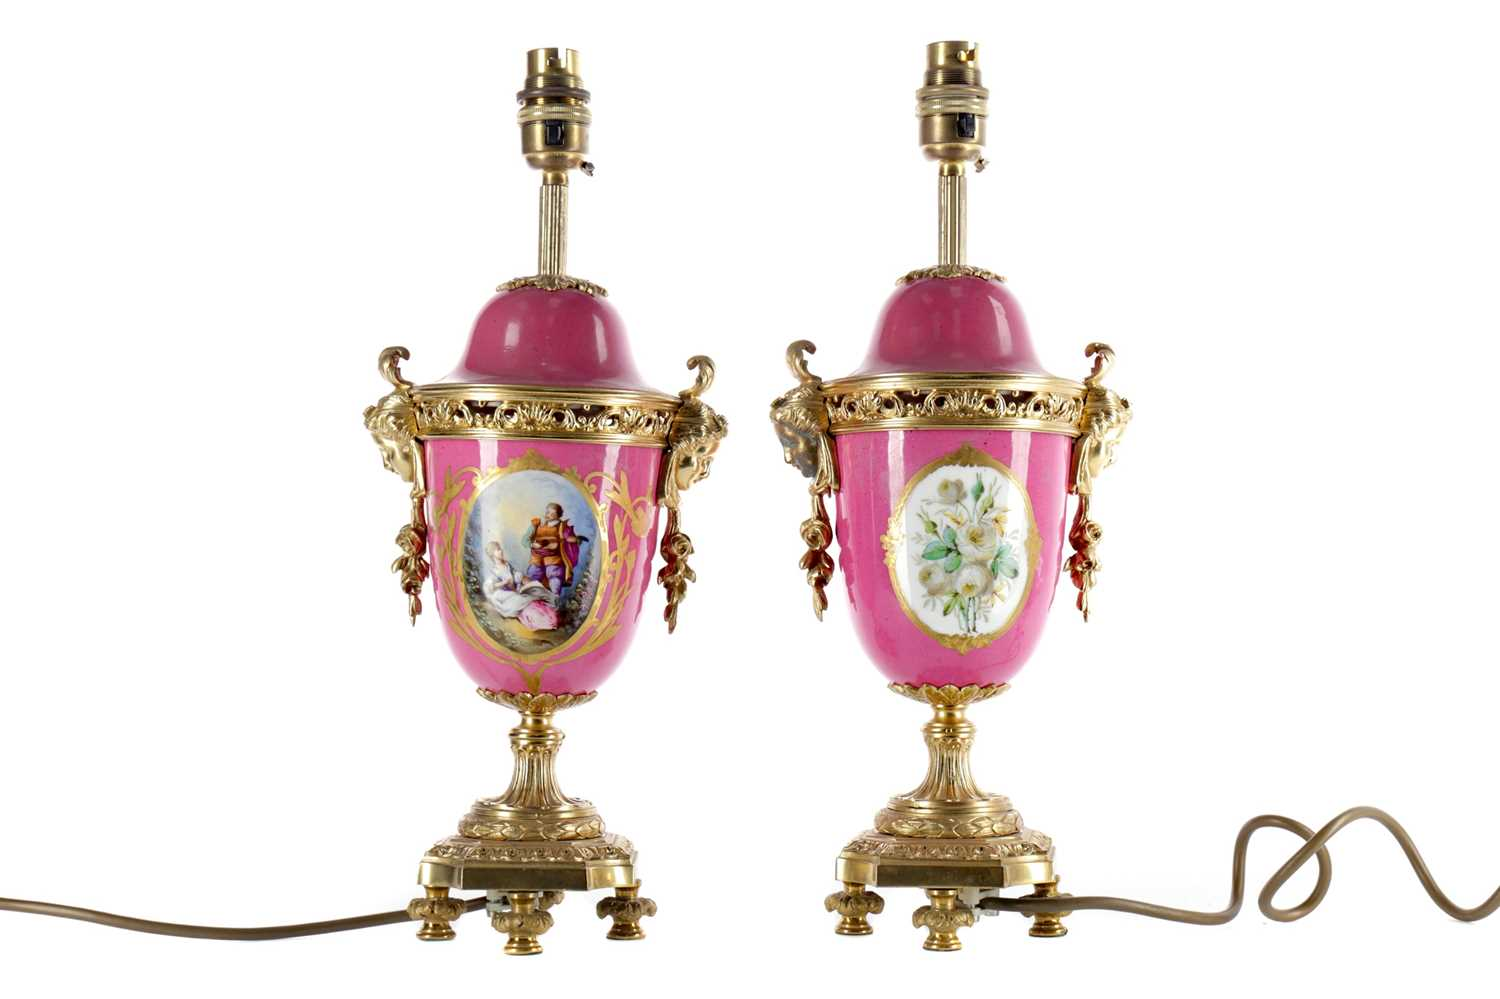 Lot 1001 - A PAIR OF LATE 19TH CENTURY CONTINENTAL ORMOLU MOUNTED TABLE LAMPS